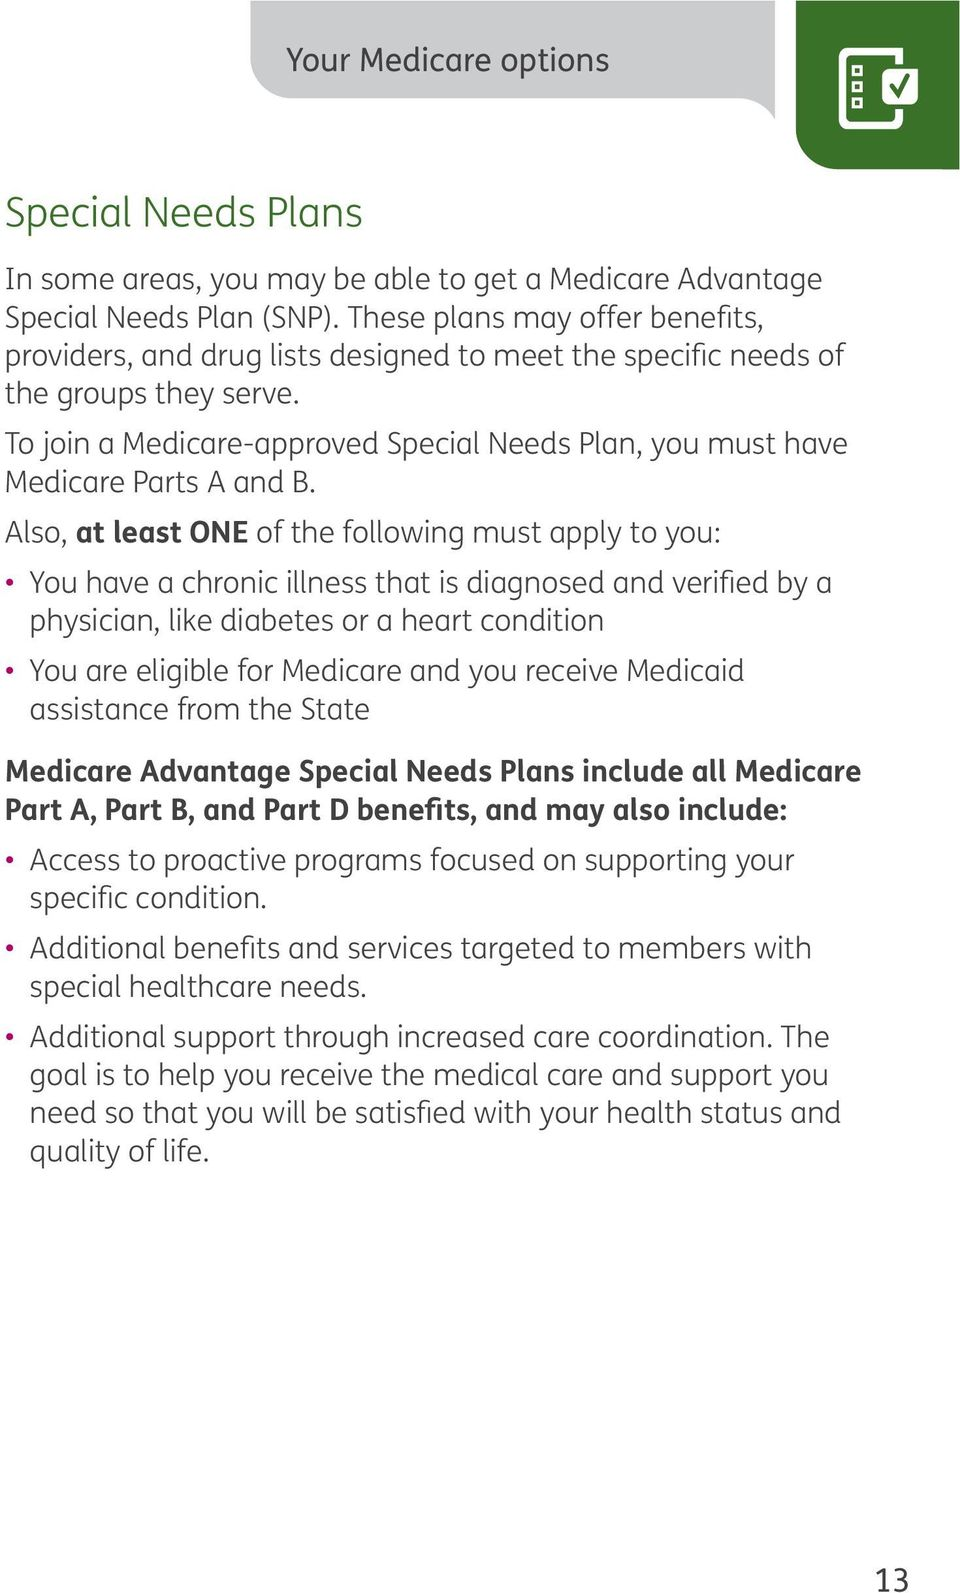 To join a Medicare-approved Special Needs Plan, you must have Medicare Parts A and B.